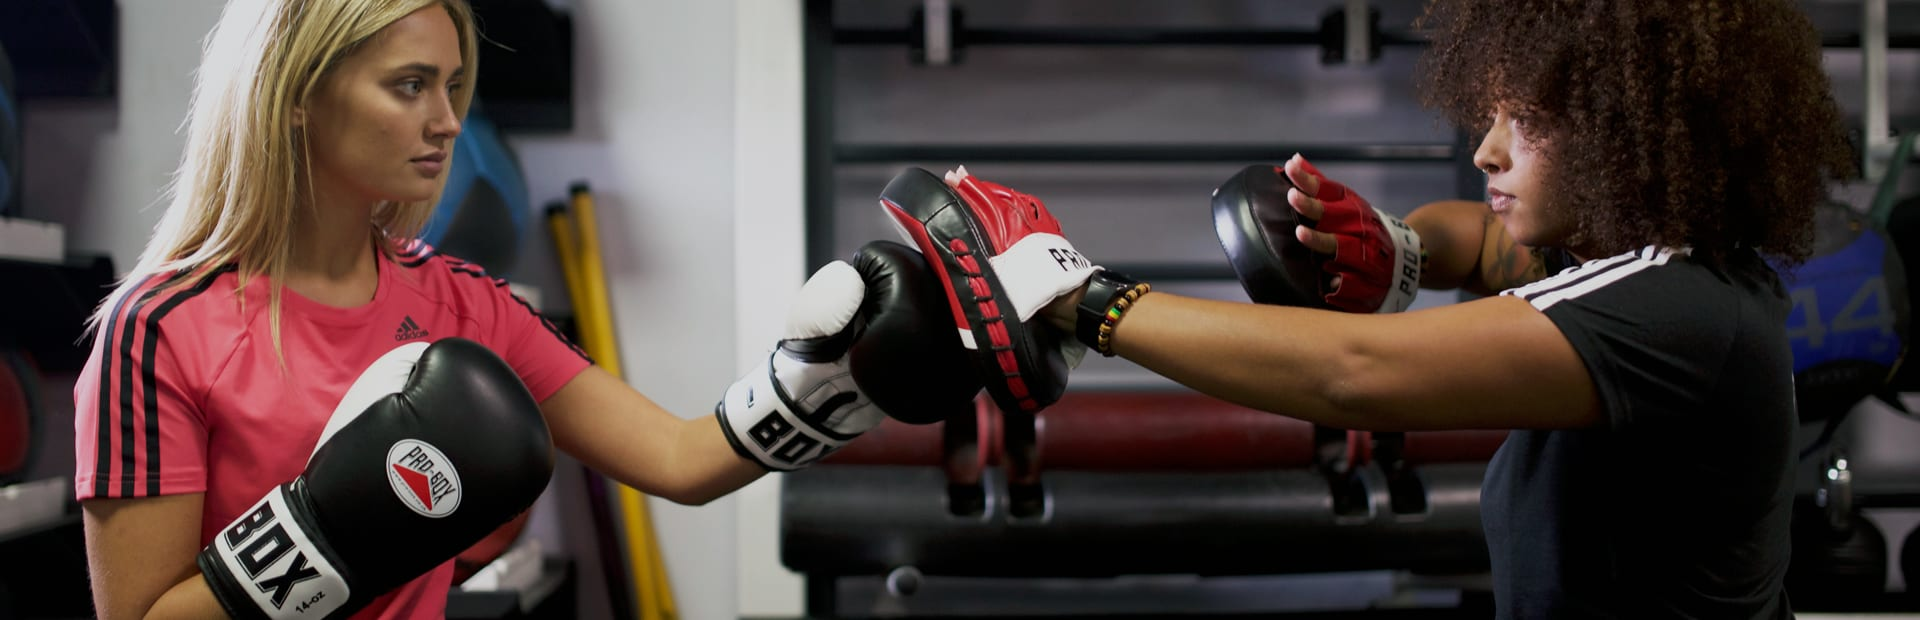 Qualified personal trainer performing boxing exercises with a client